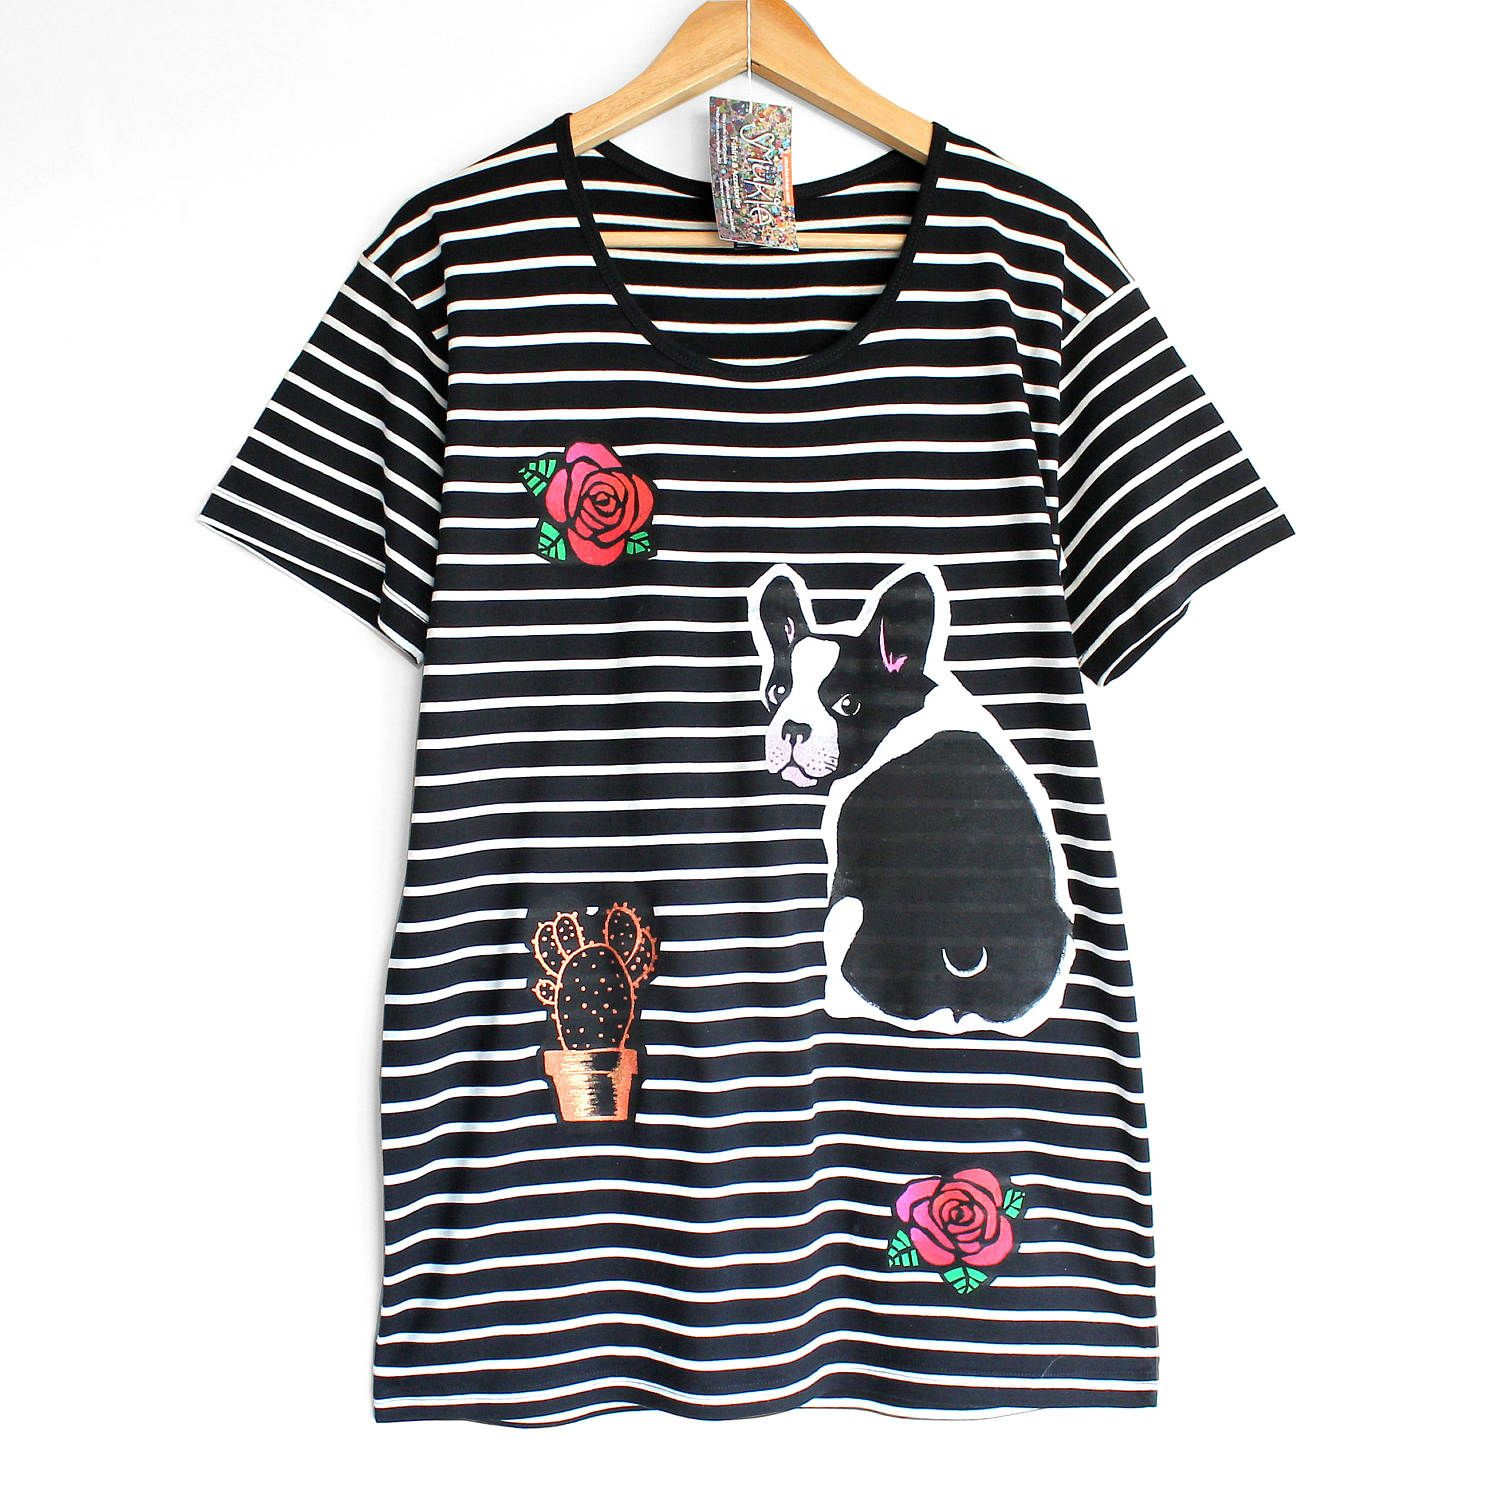 Black t shirt with white stripes - Dogs And Roses T Shirt Black T Shirt With White Stripes Dog T Shirt French Bulldog T Shirt Dog Persons T Shirt